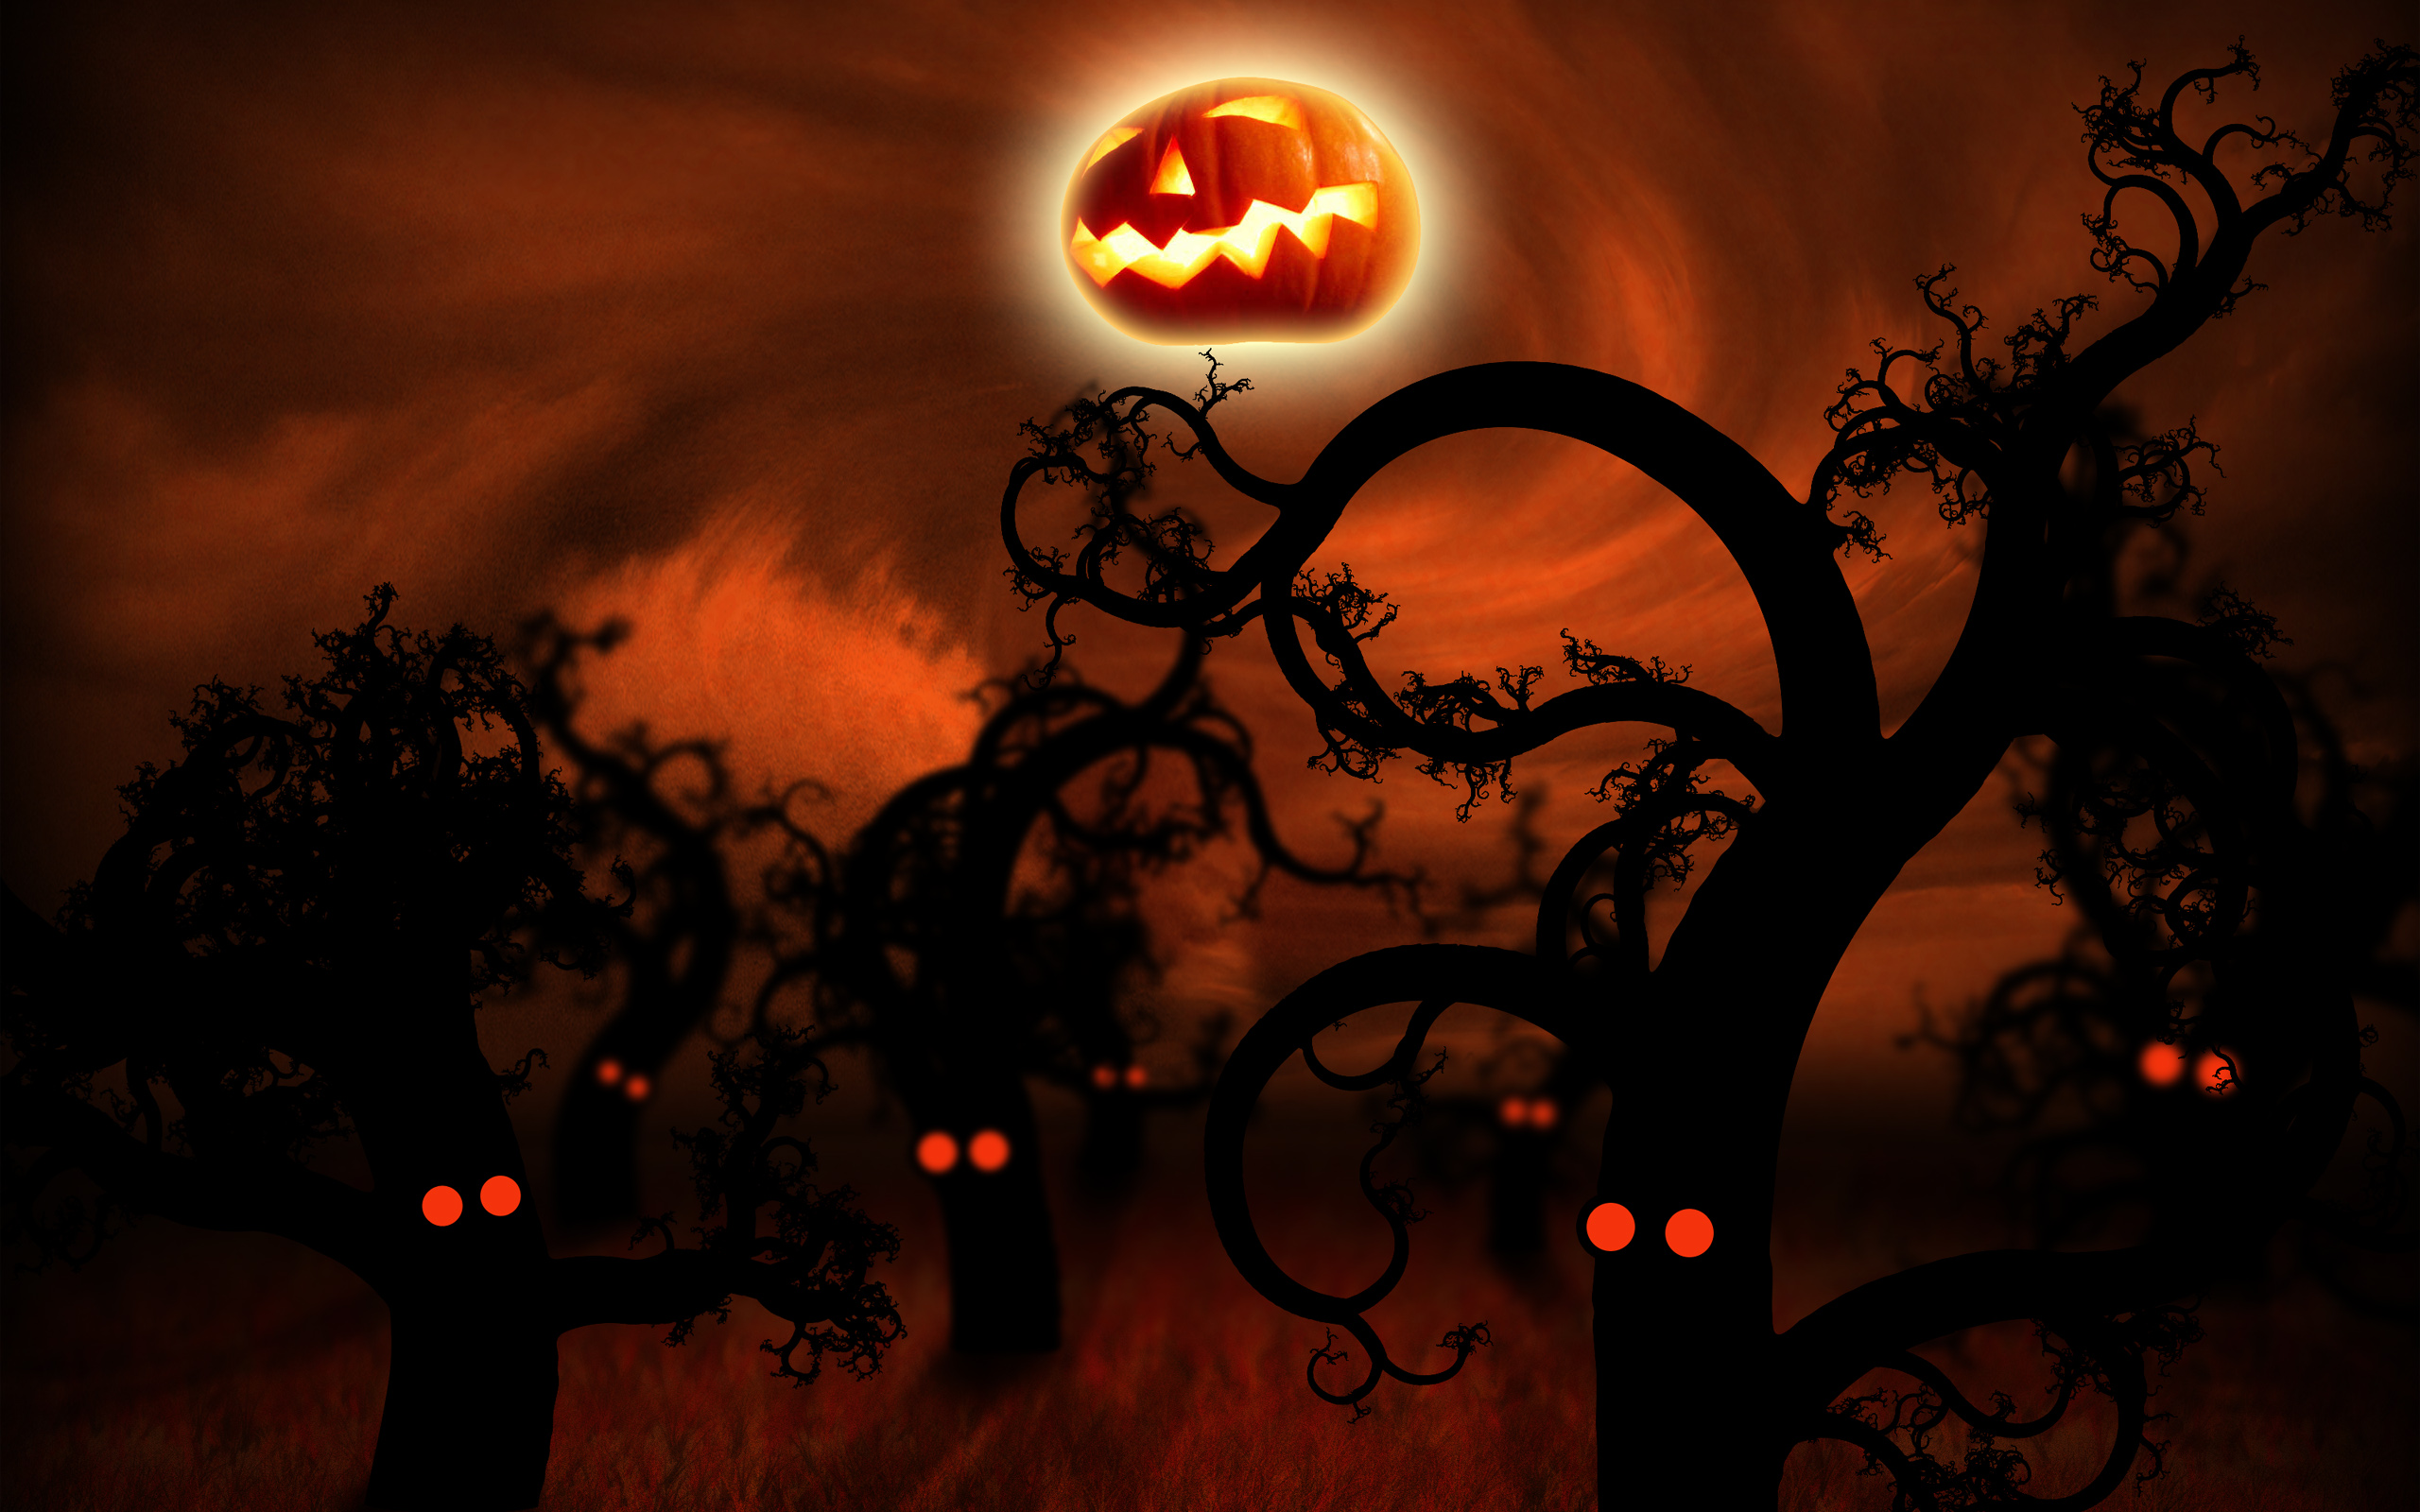 midnight forest halloween wallpapers hd wallpapers